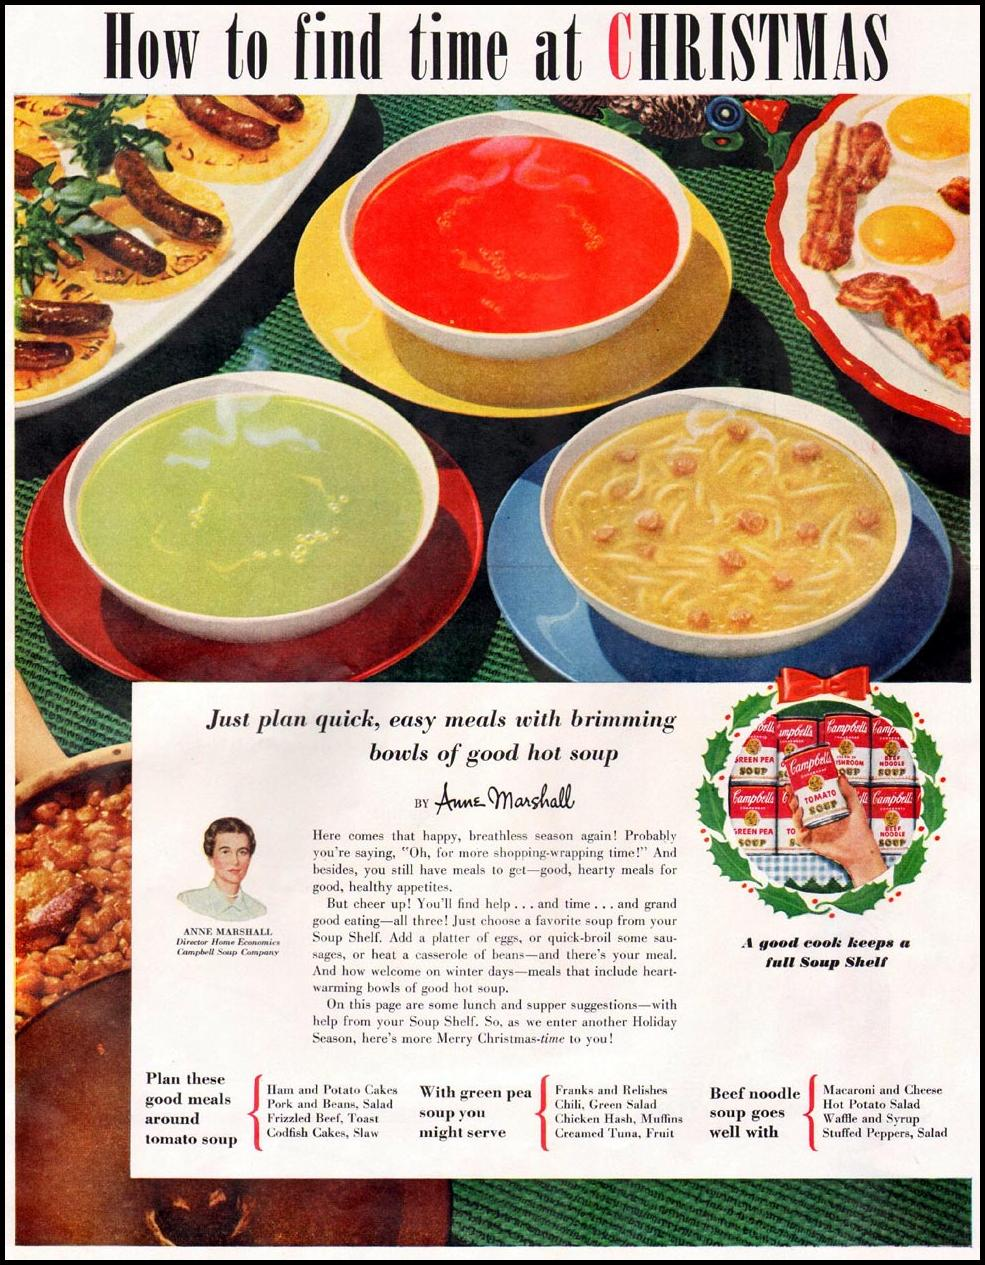 CAMPBELL'S SOUPS WOMAN'S HOME COMPANION 12/01/1952 p. 46